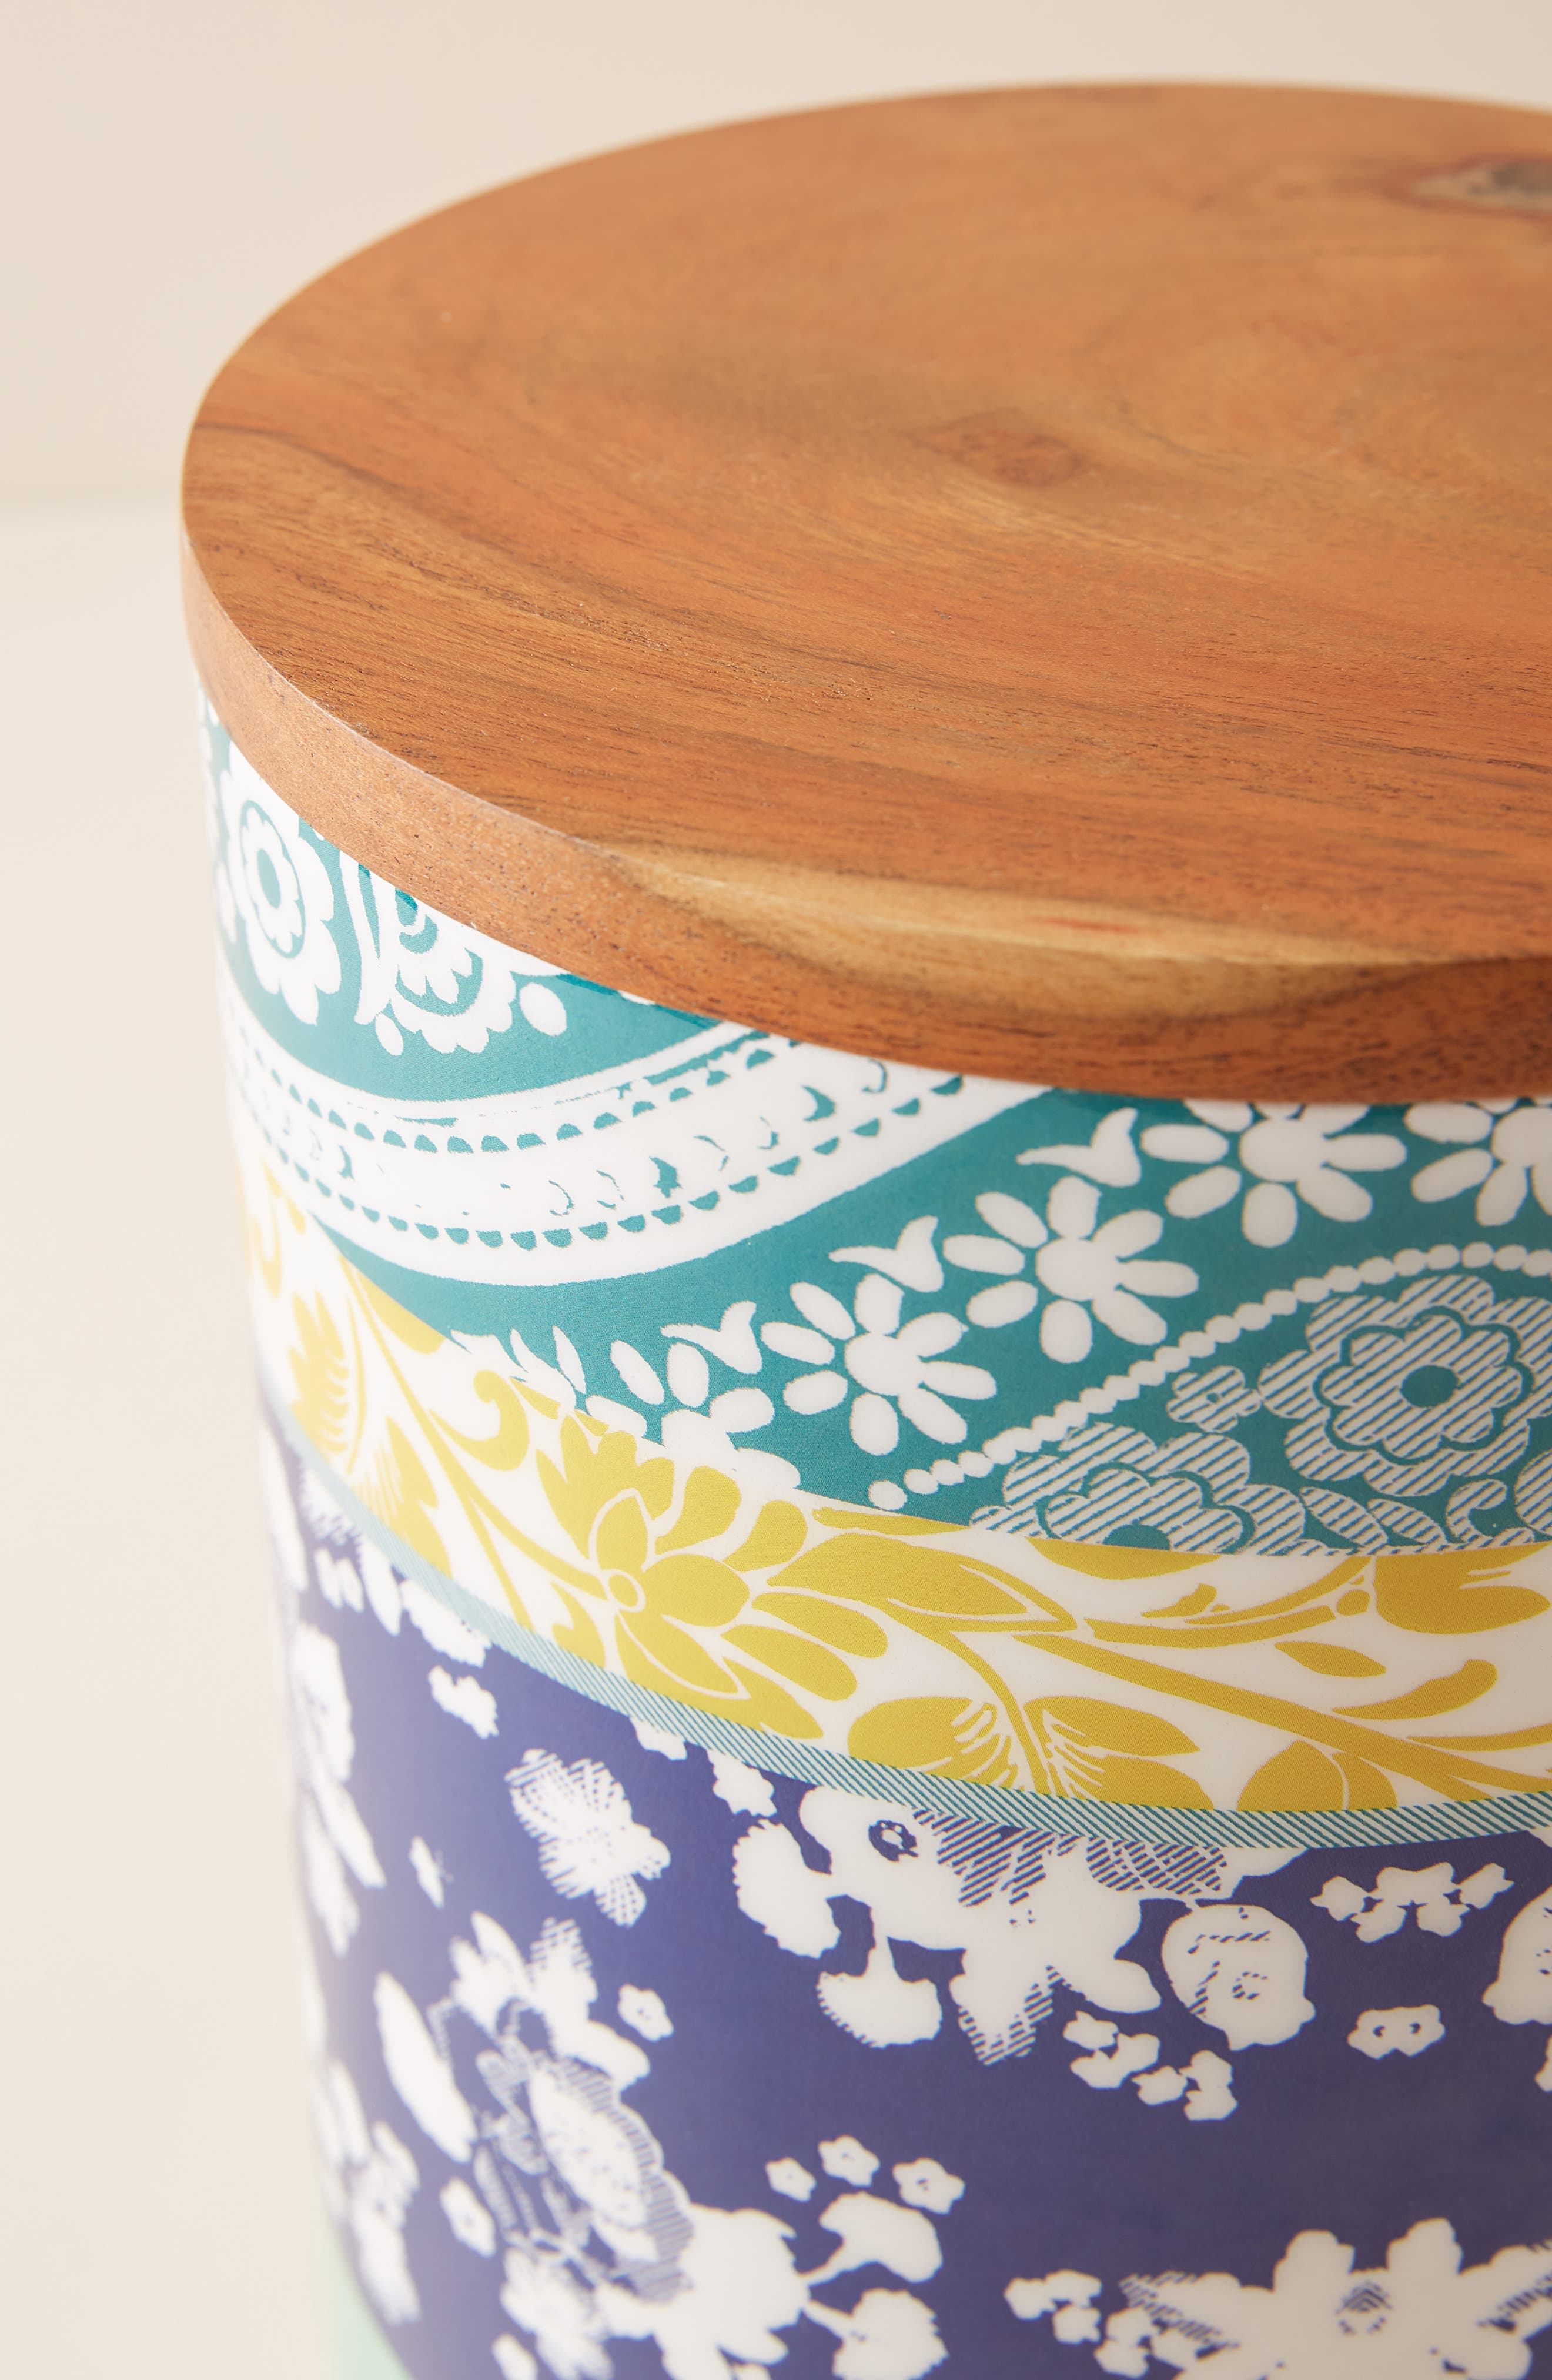 ANTHROPOLOGIE,                             Jacquard Canister,                             Alternate thumbnail 2, color,                             PURPLE